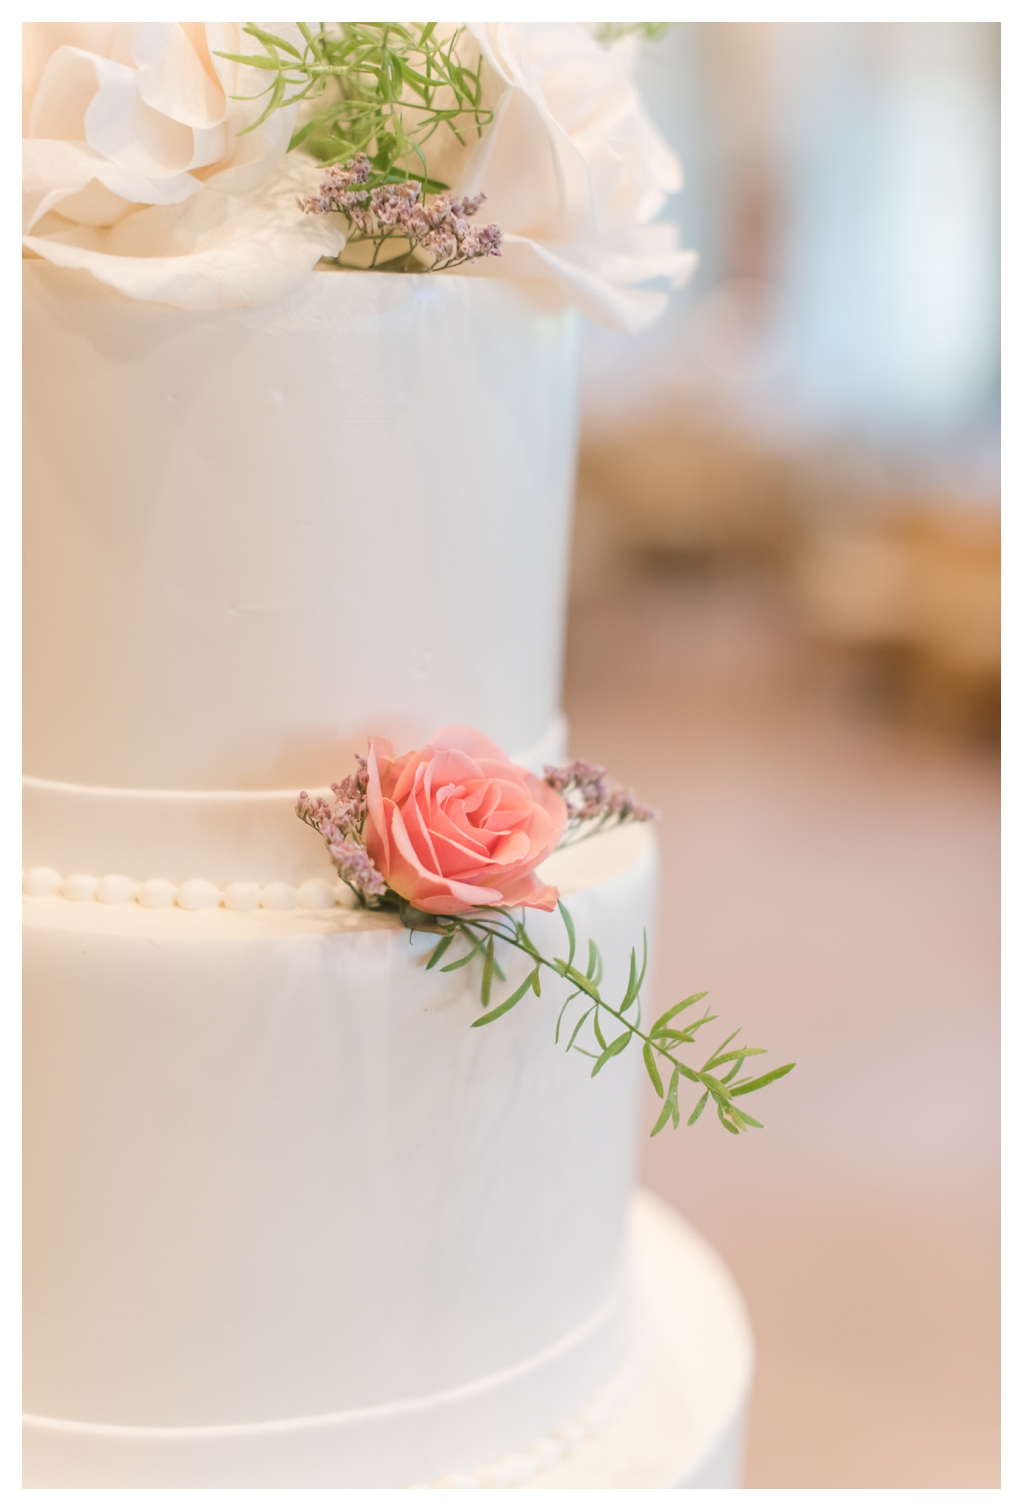 Classic White Wedding Cake with Pink Flowers_0637.jpg